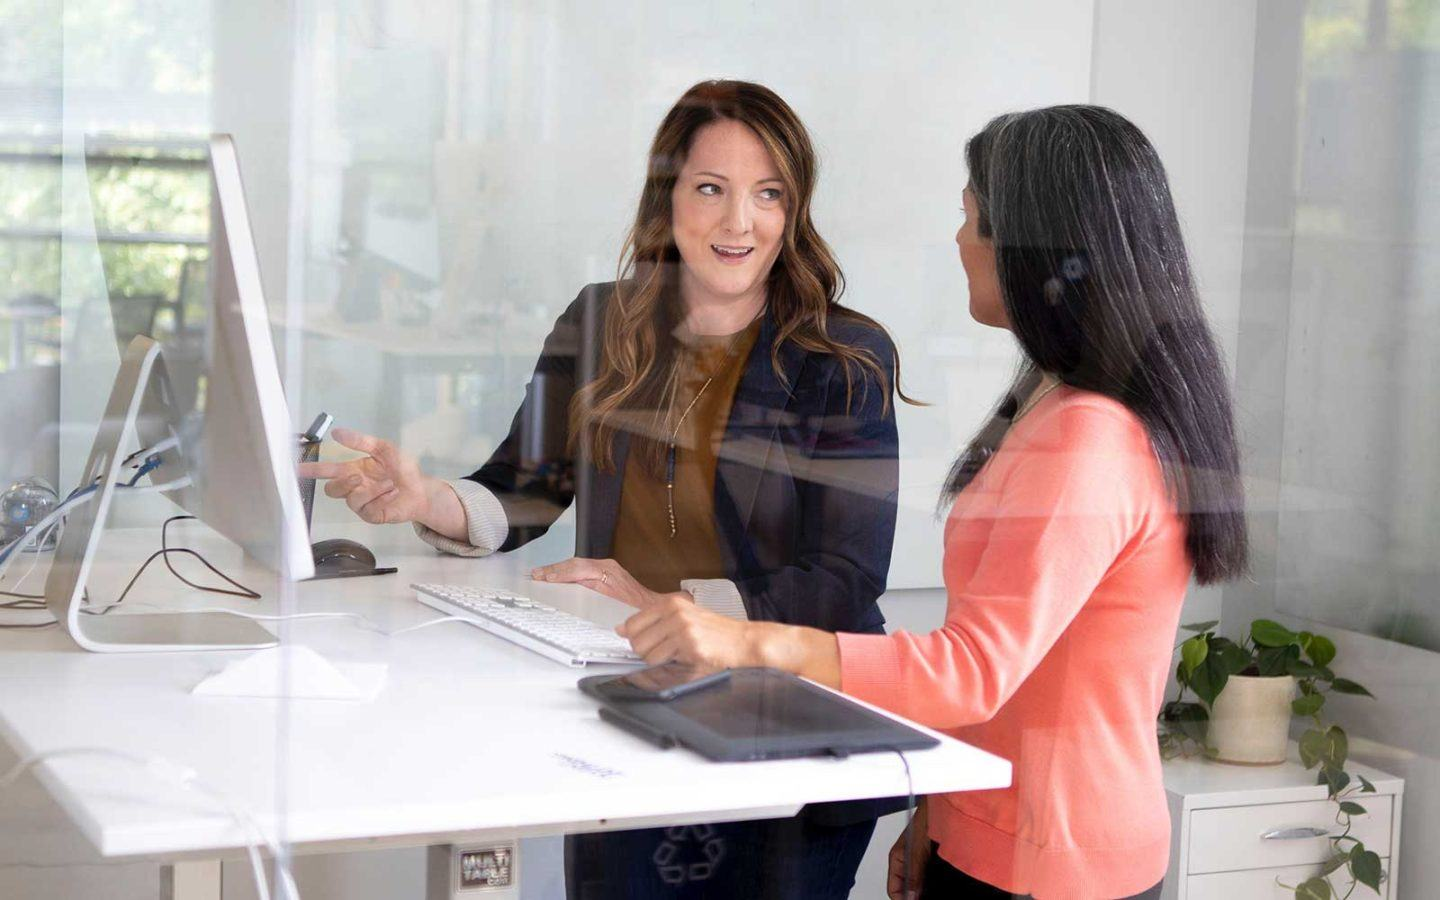 woman in pink shirt and woman in blazer working together at a white desk in front of a computer